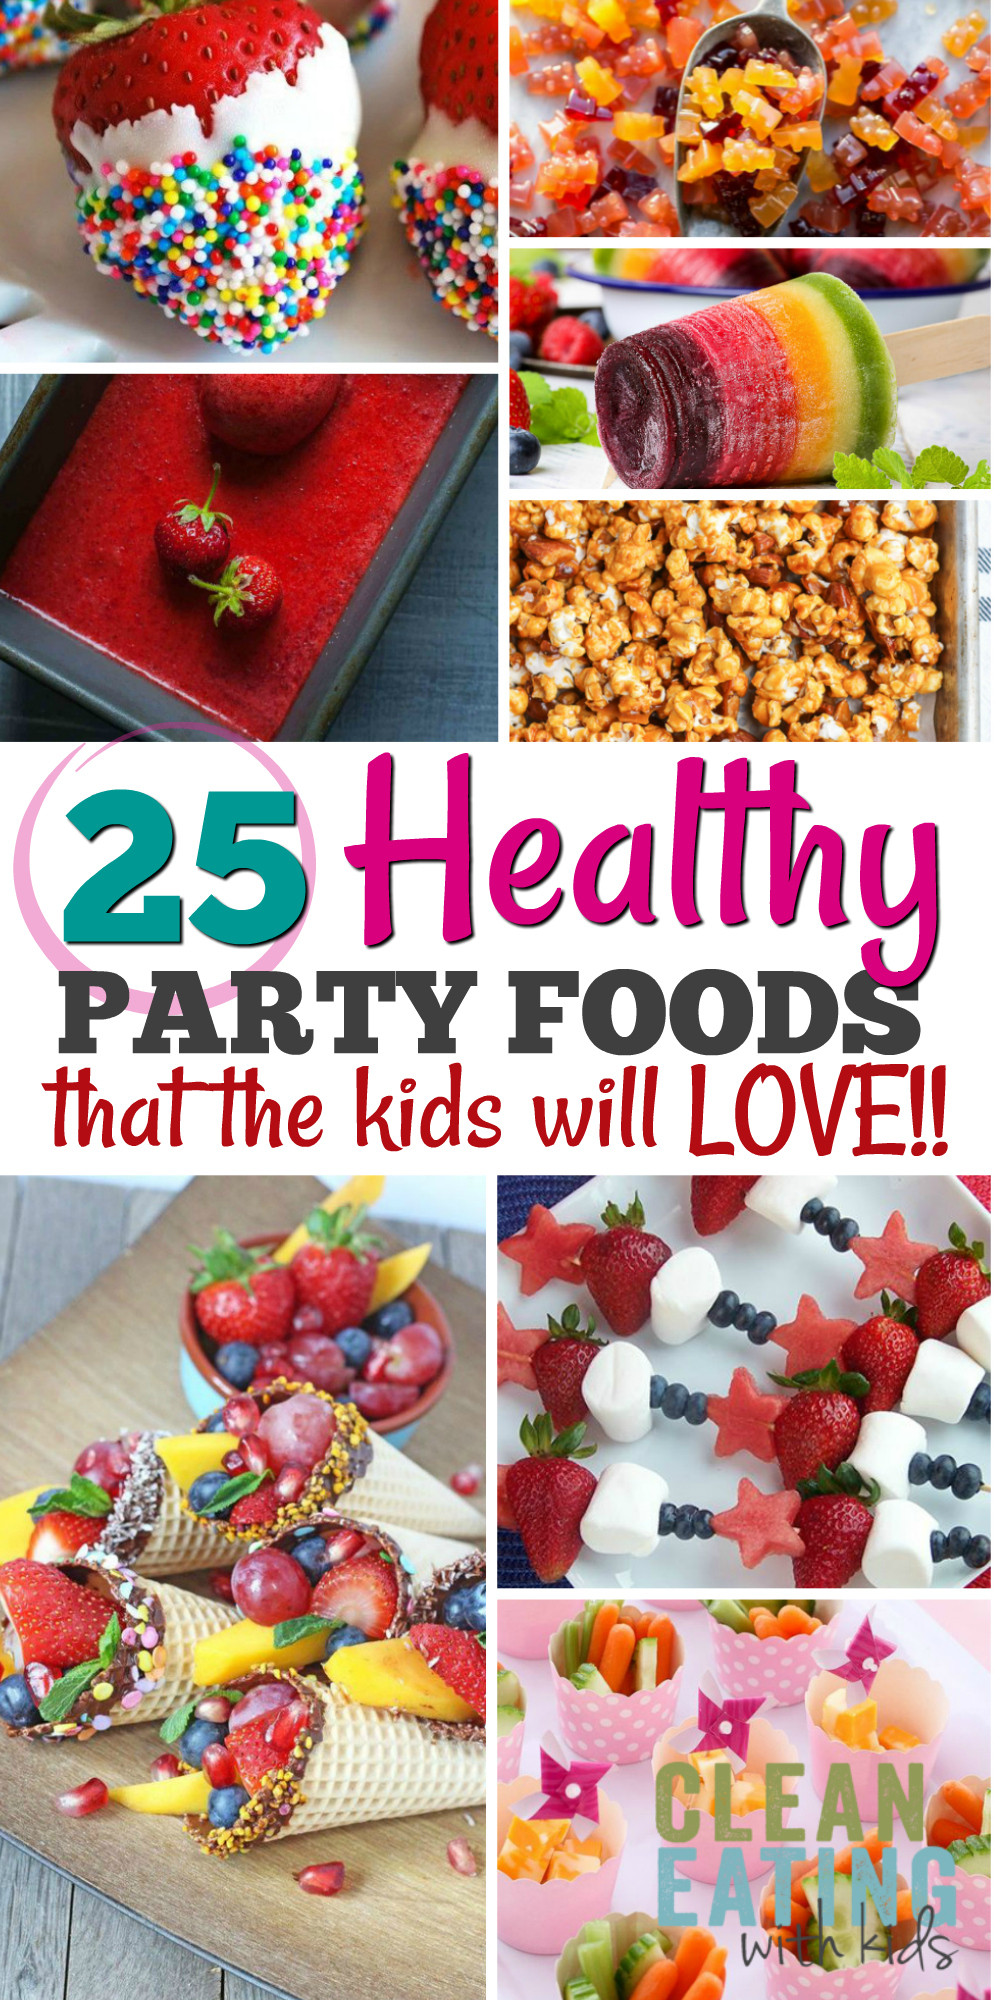 Party Food Ideas For Teenagers  25 Healthy Birthday Party Food Ideas Clean Eating with kids